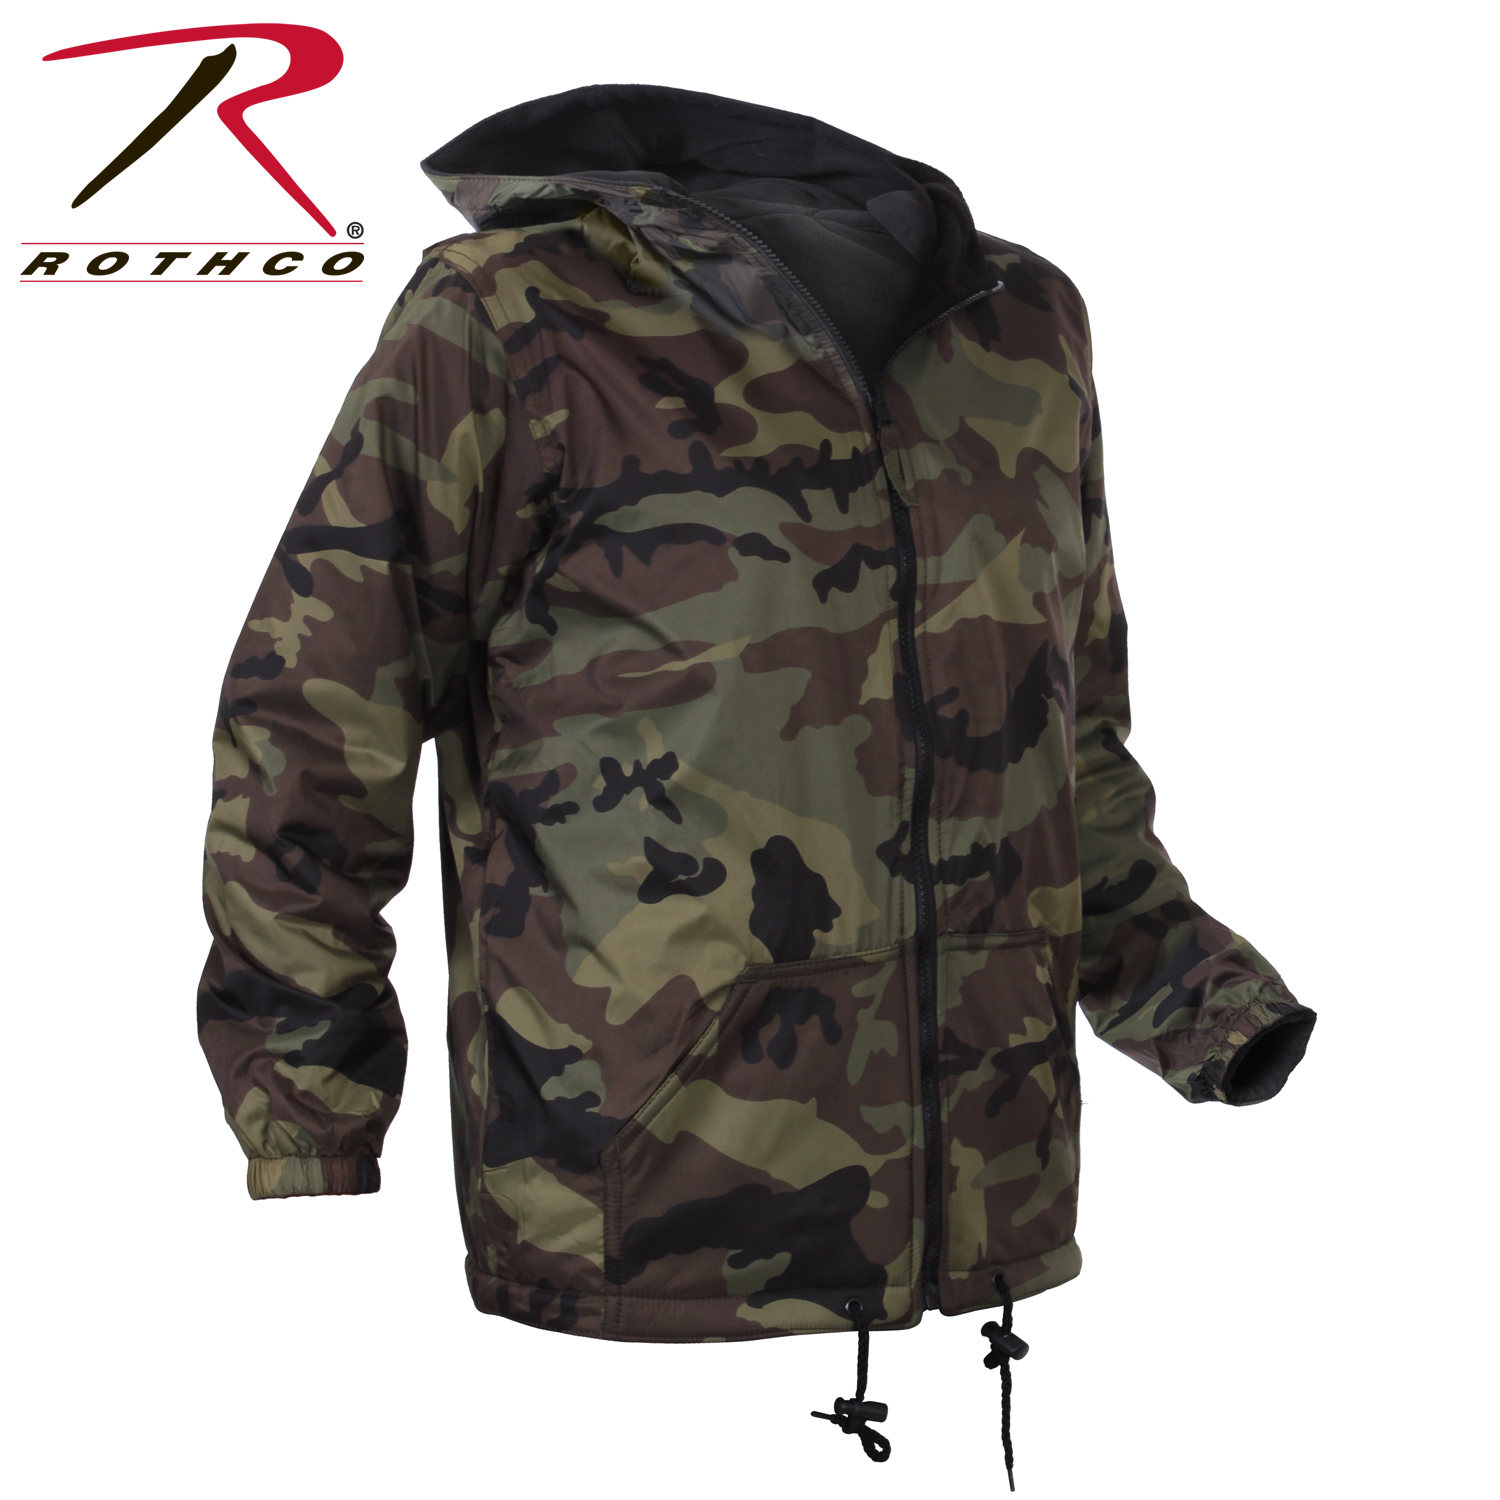 Shop for kids camo jacket online at Target. Free shipping on purchases over $35 and save 5% every day with your Target REDcard.